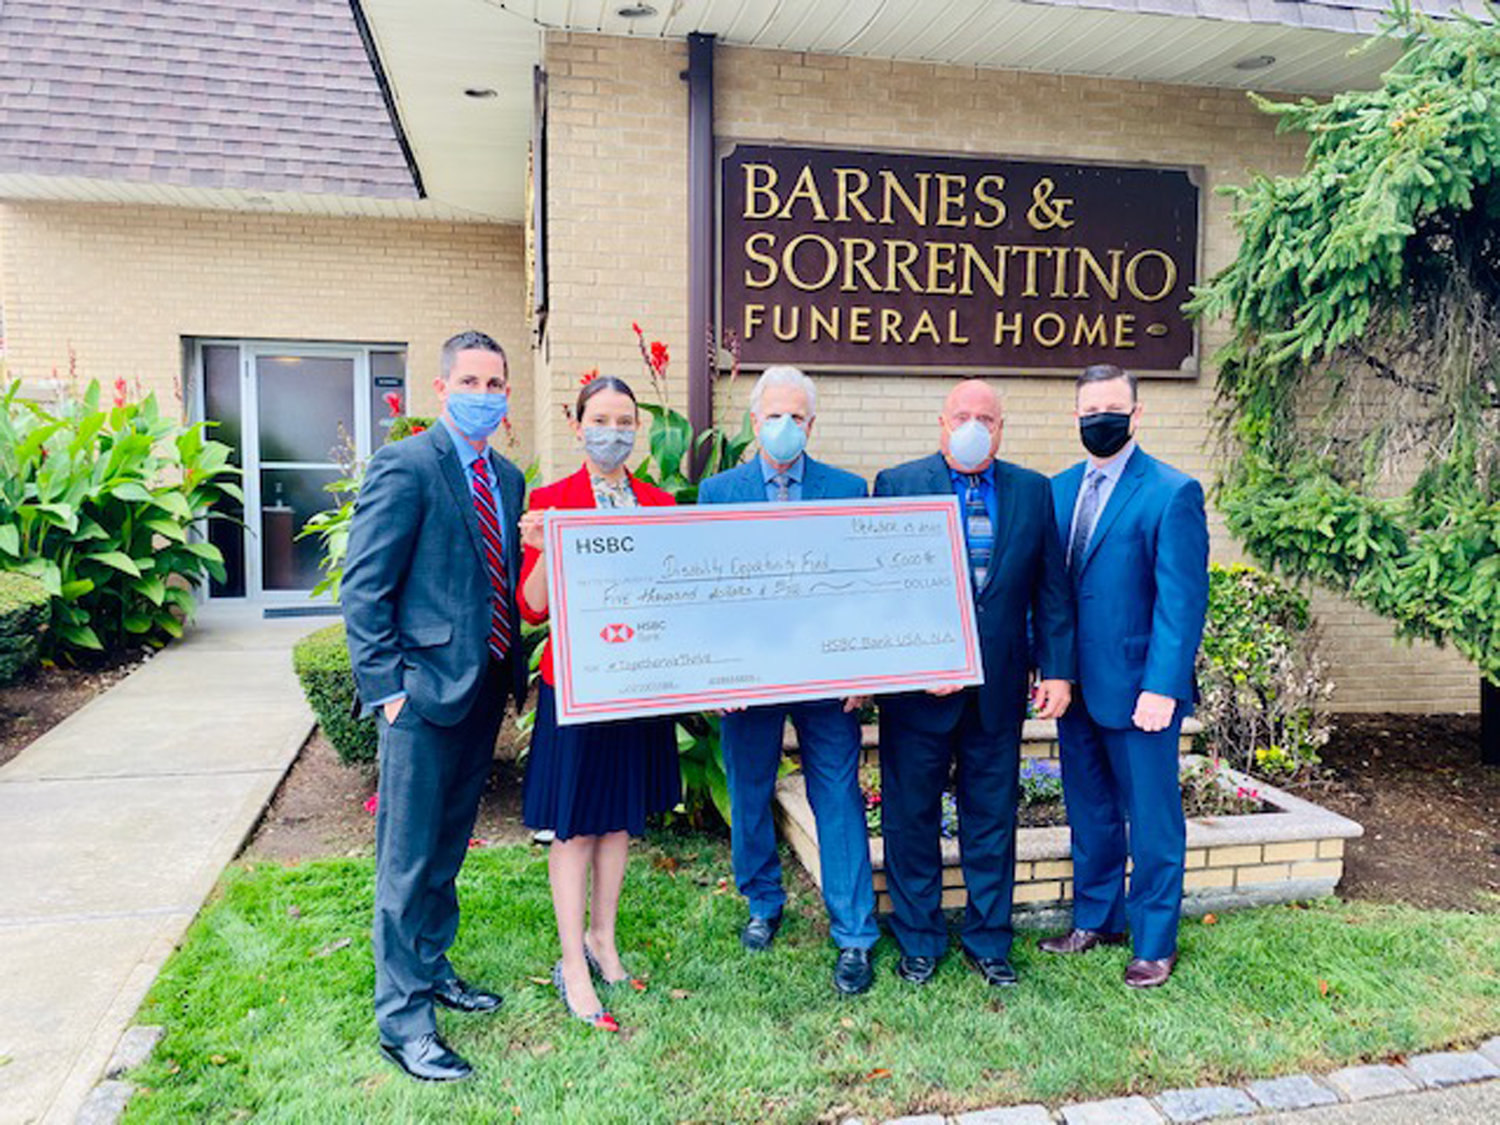 Barnes-Sorrentino Funeral Home owner Frederic Sorrentino, center, and his colleague John Telesca, to his immediate left, received a $5,000 check from HSBC Bank USA, which was donated on their behalf to the Disability Opportunity Fund of Rockville Centre. The two were joined by HSBC area manager Thomas Haggerty, far left, Franklin Square branch manager Zakia Benzoubeier and Senior Vice President Ralph Scannell Jr.